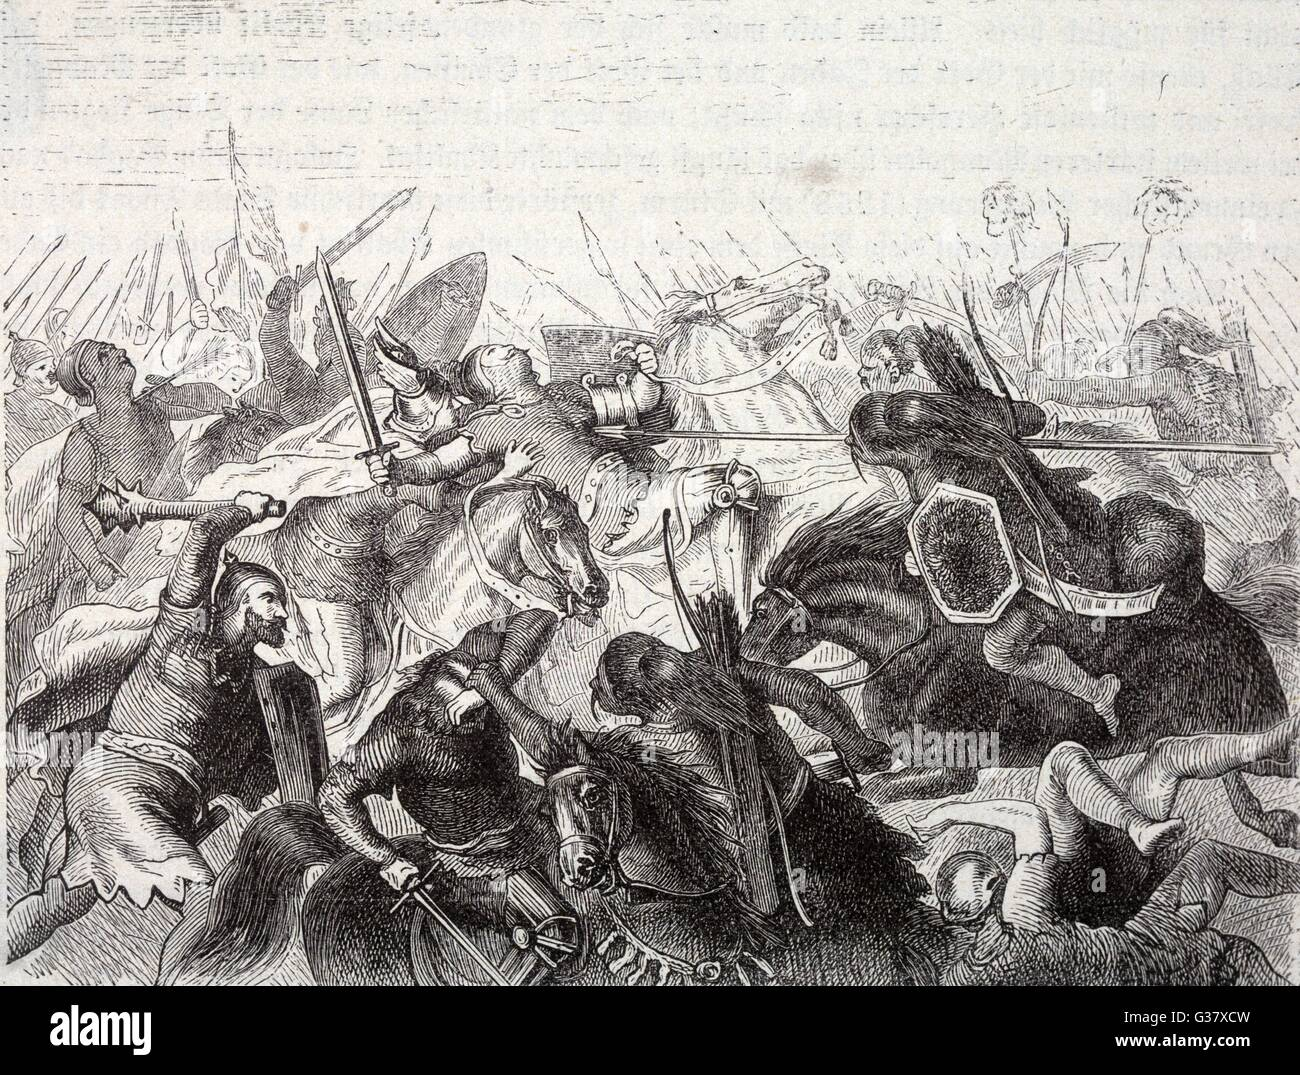 GERMANY / HUNGARY The Mongol armies invade  Eastern Europe and inflict  serious losses on the German  nobles at - Stock Image